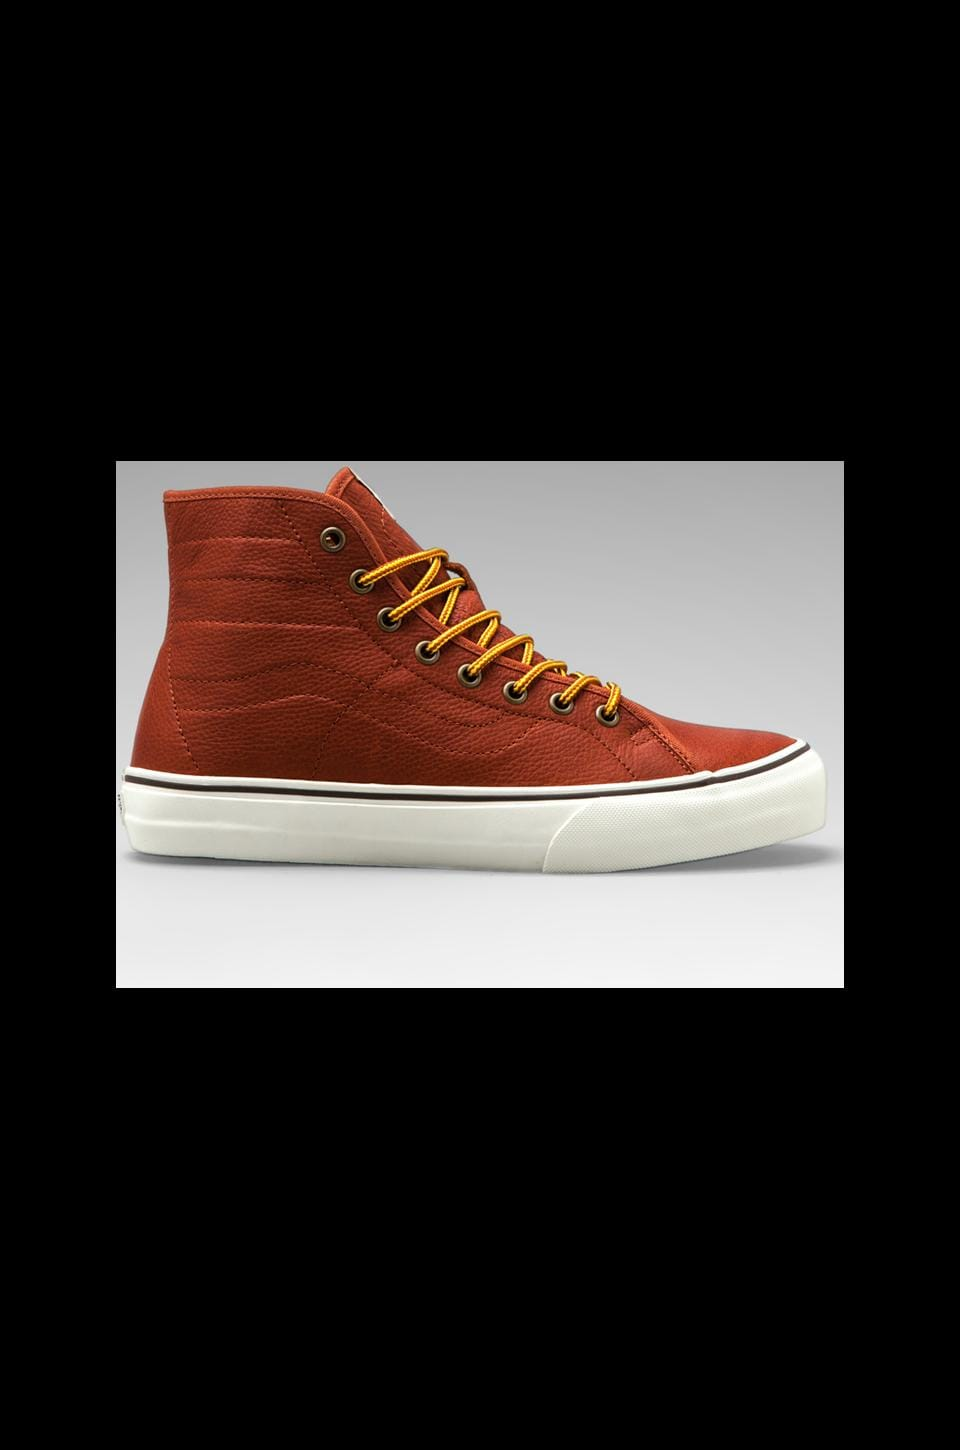 Vans California SK8-HI Leather in Henna